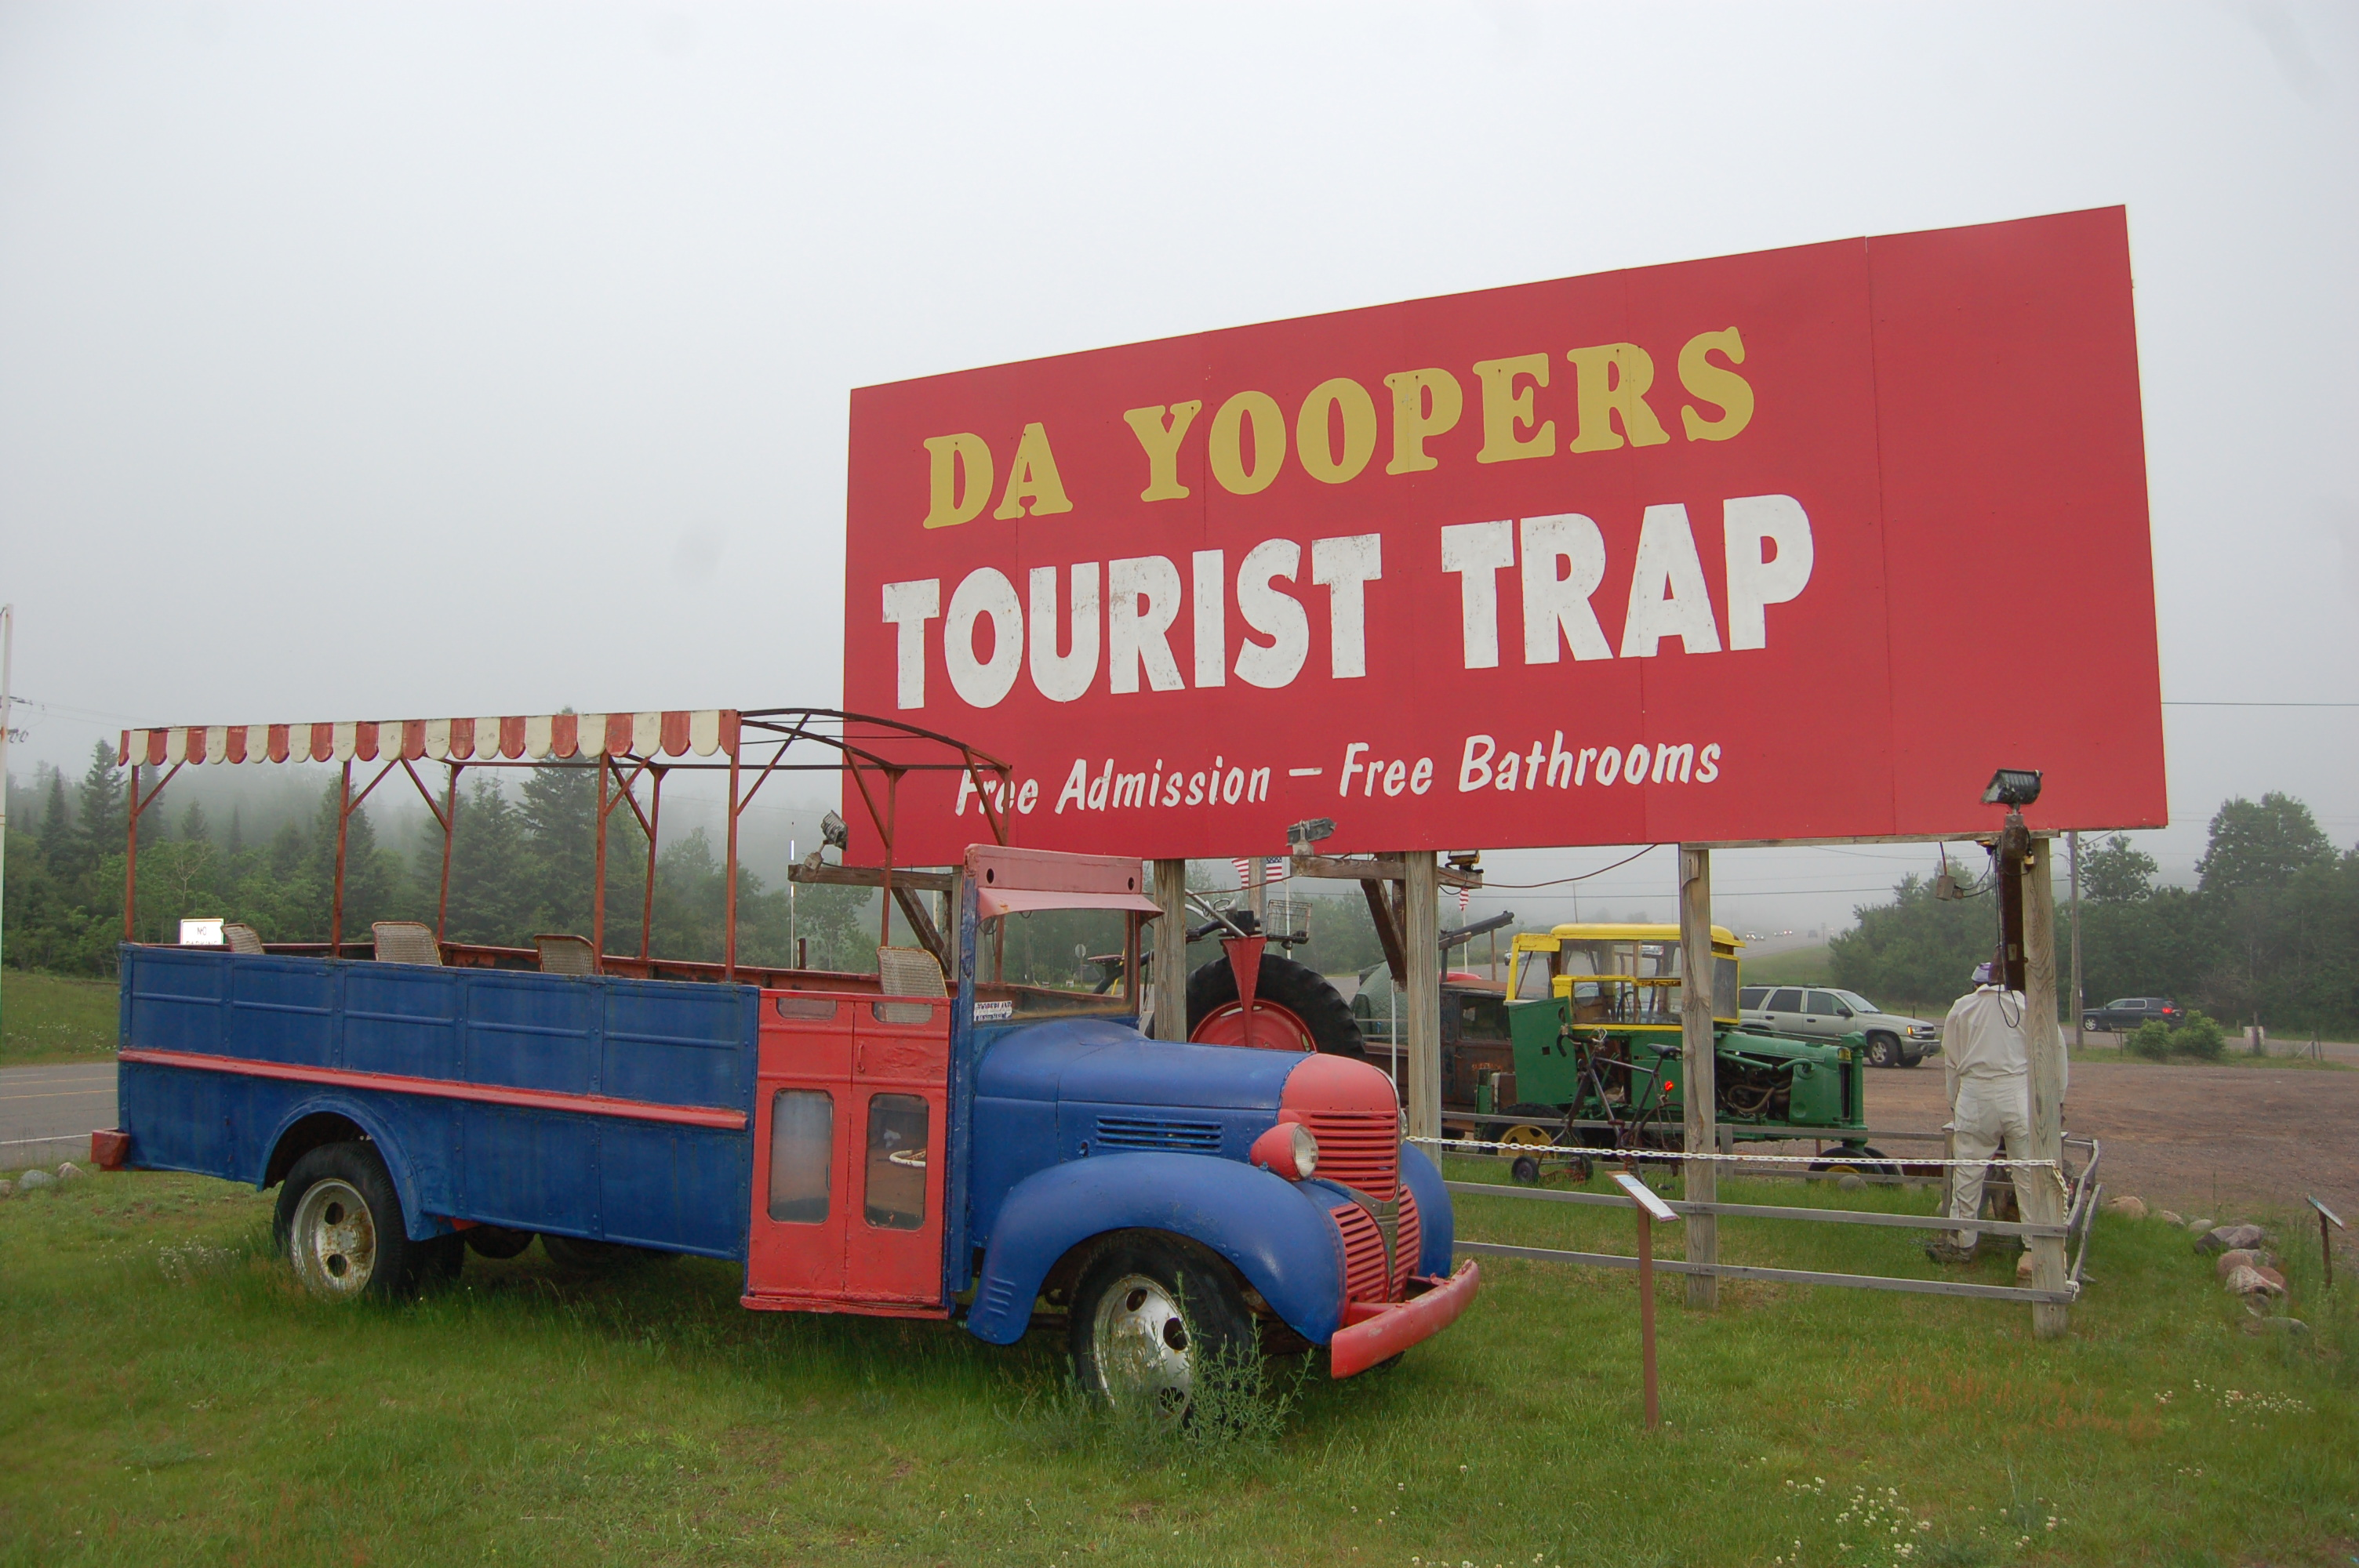 Da Yoopers Tourist Trap Bus